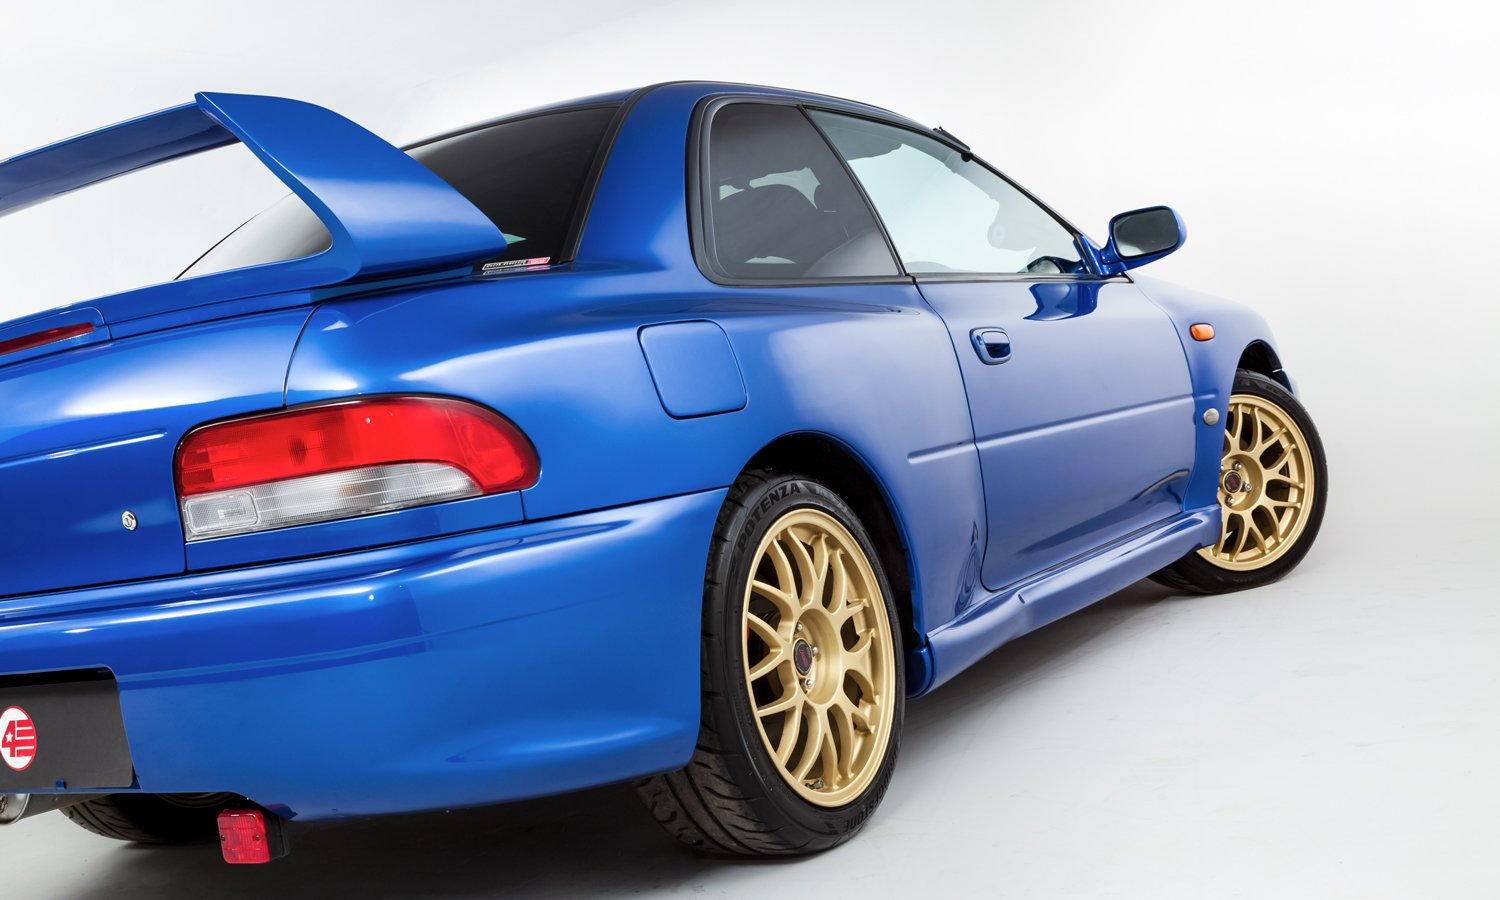 Subaru-Impreza-22B-STi-1998-for-sale-8